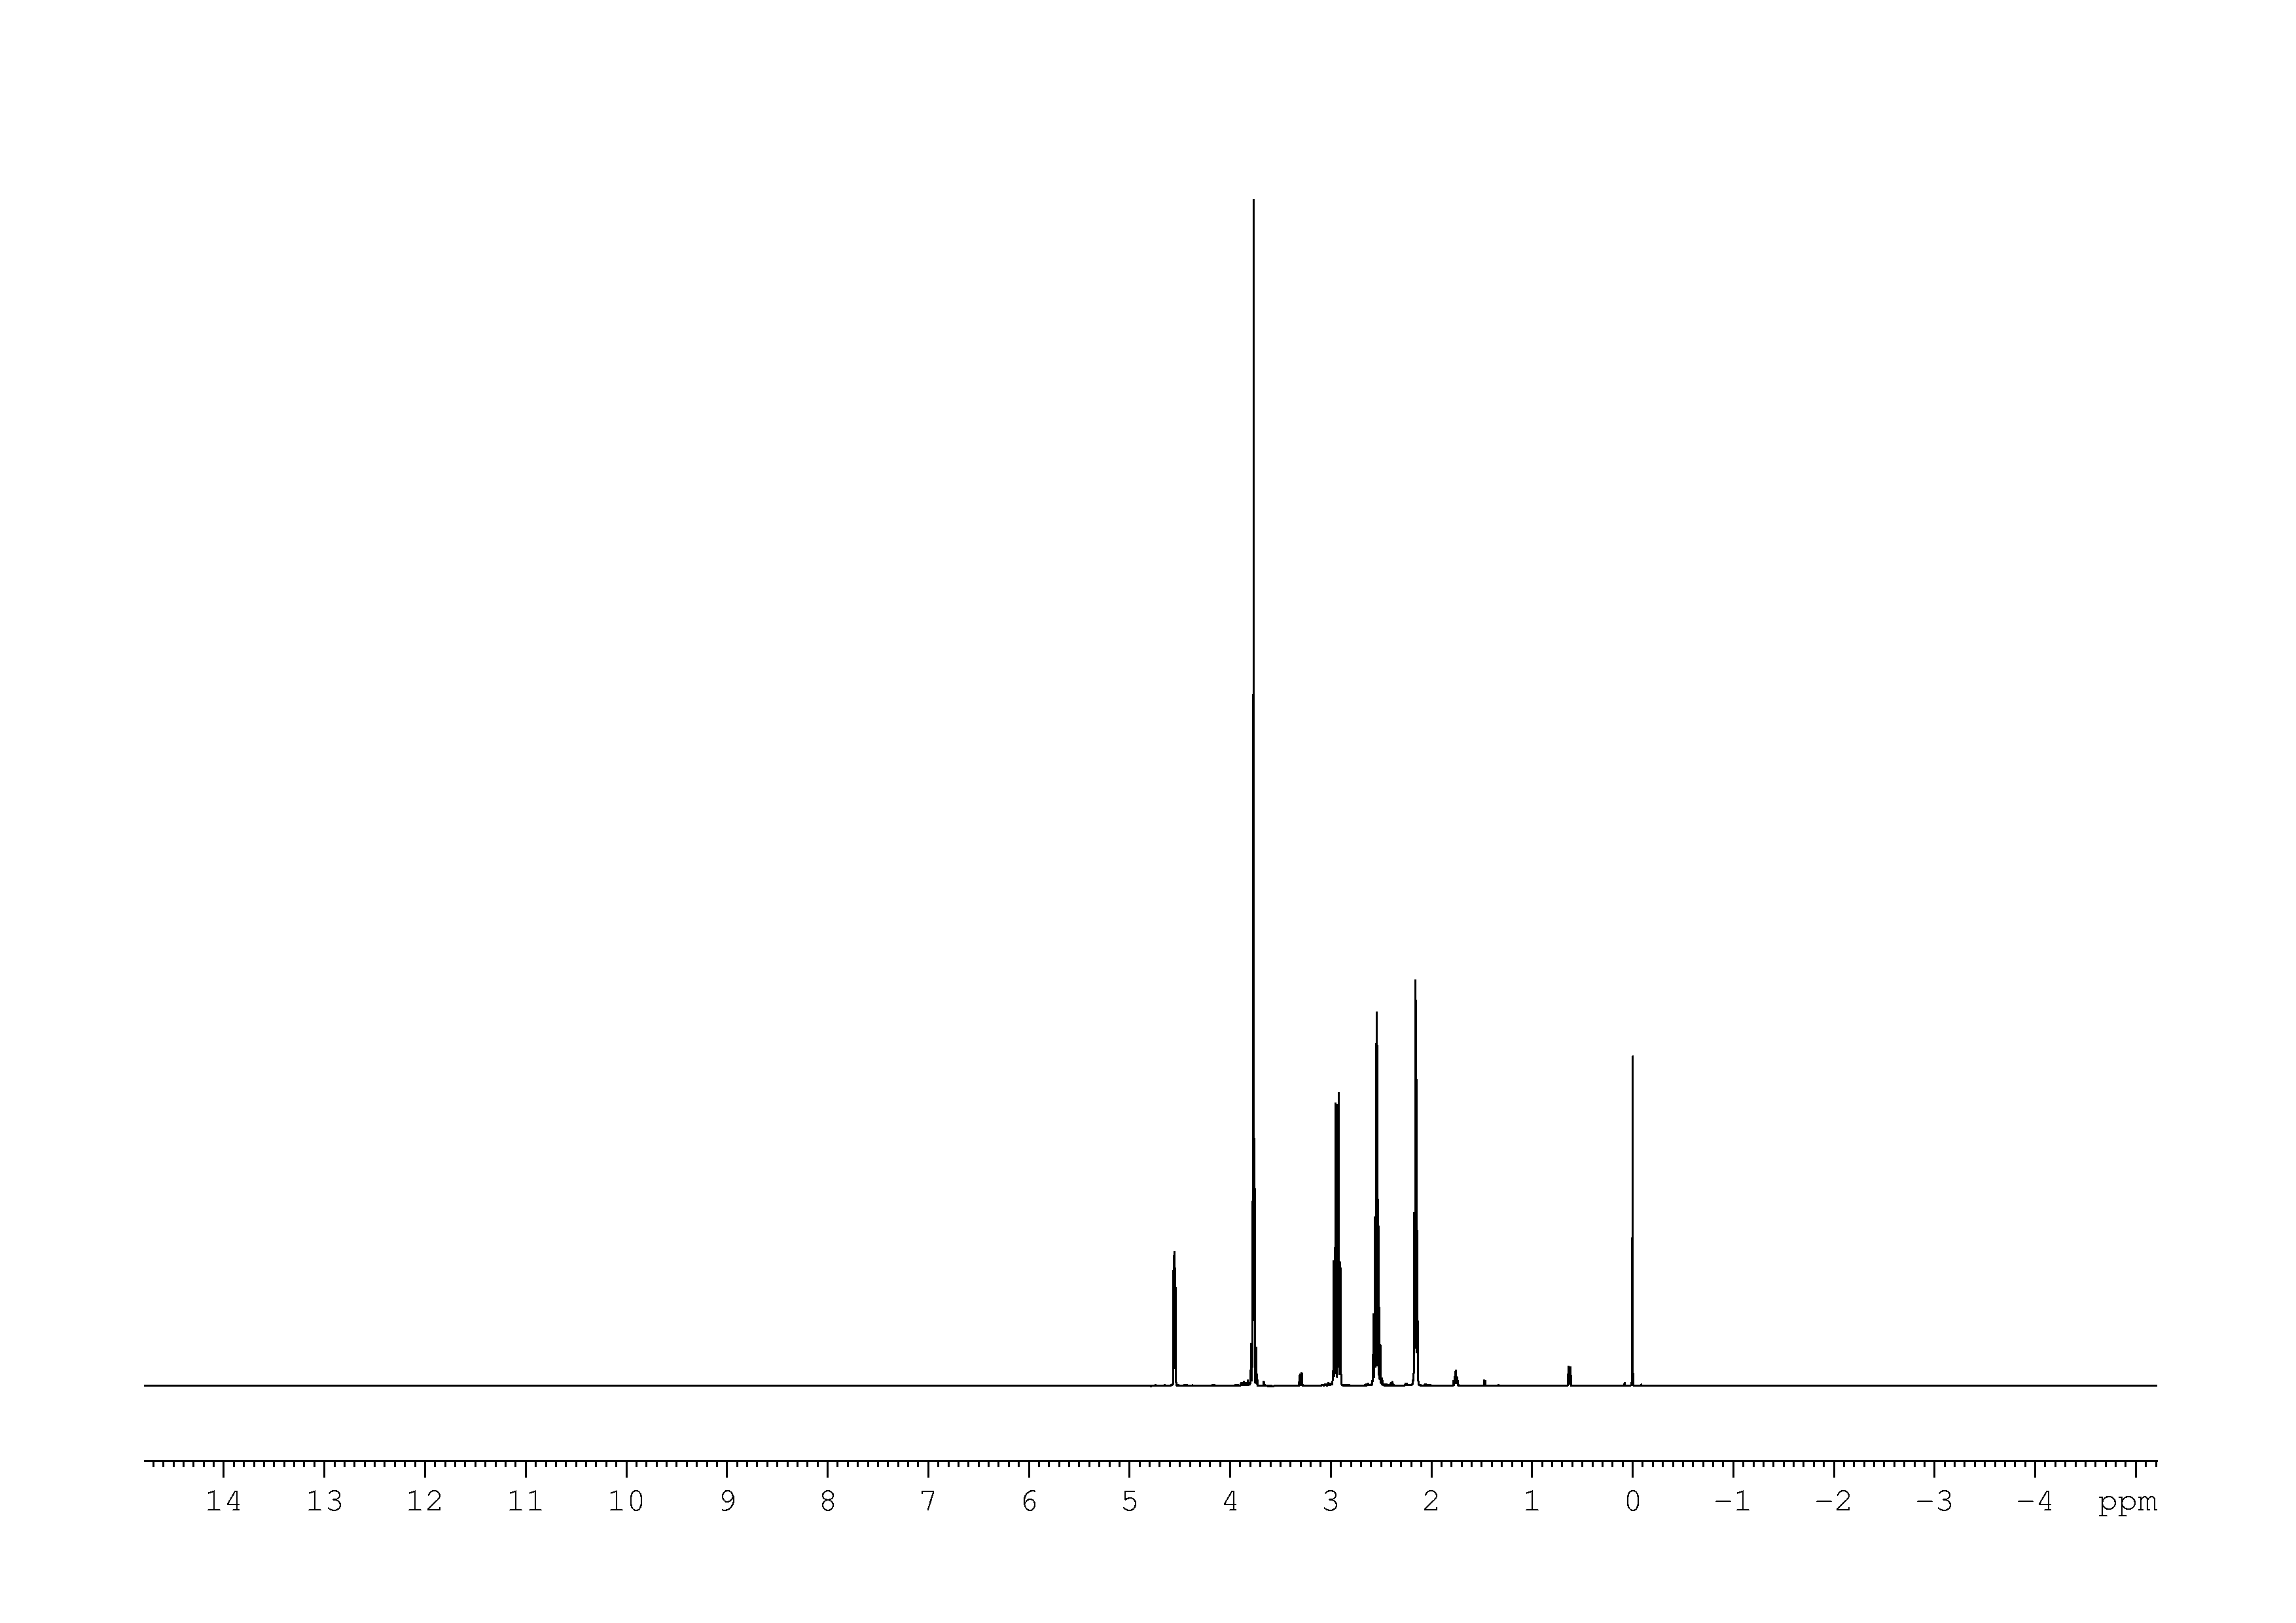 1D 1H, NOESY, 7.4 spectrum for L-Glutathione reduced